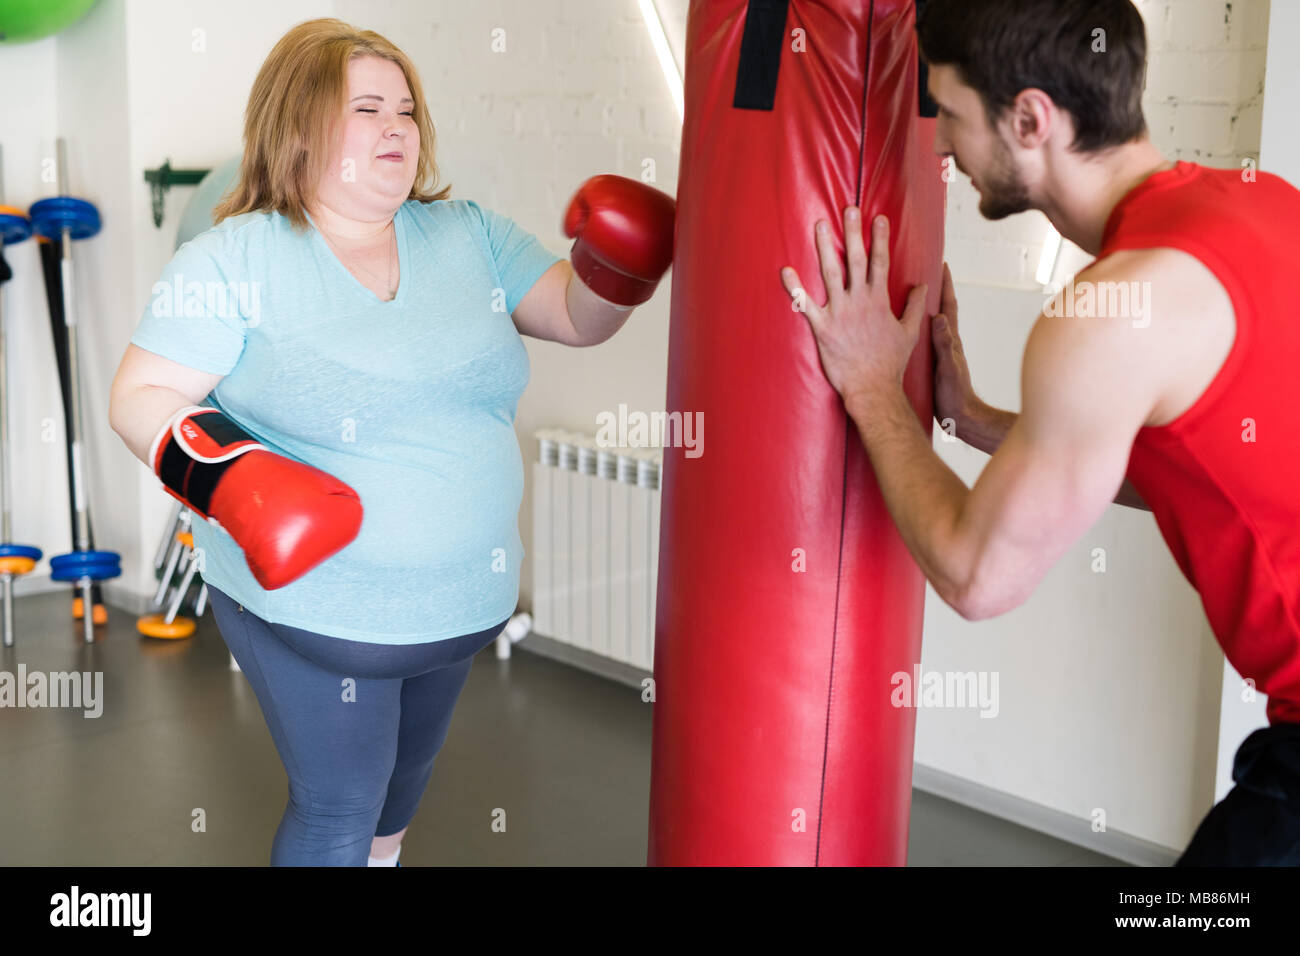 Obese Woman Boxing in Gym - Stock Image